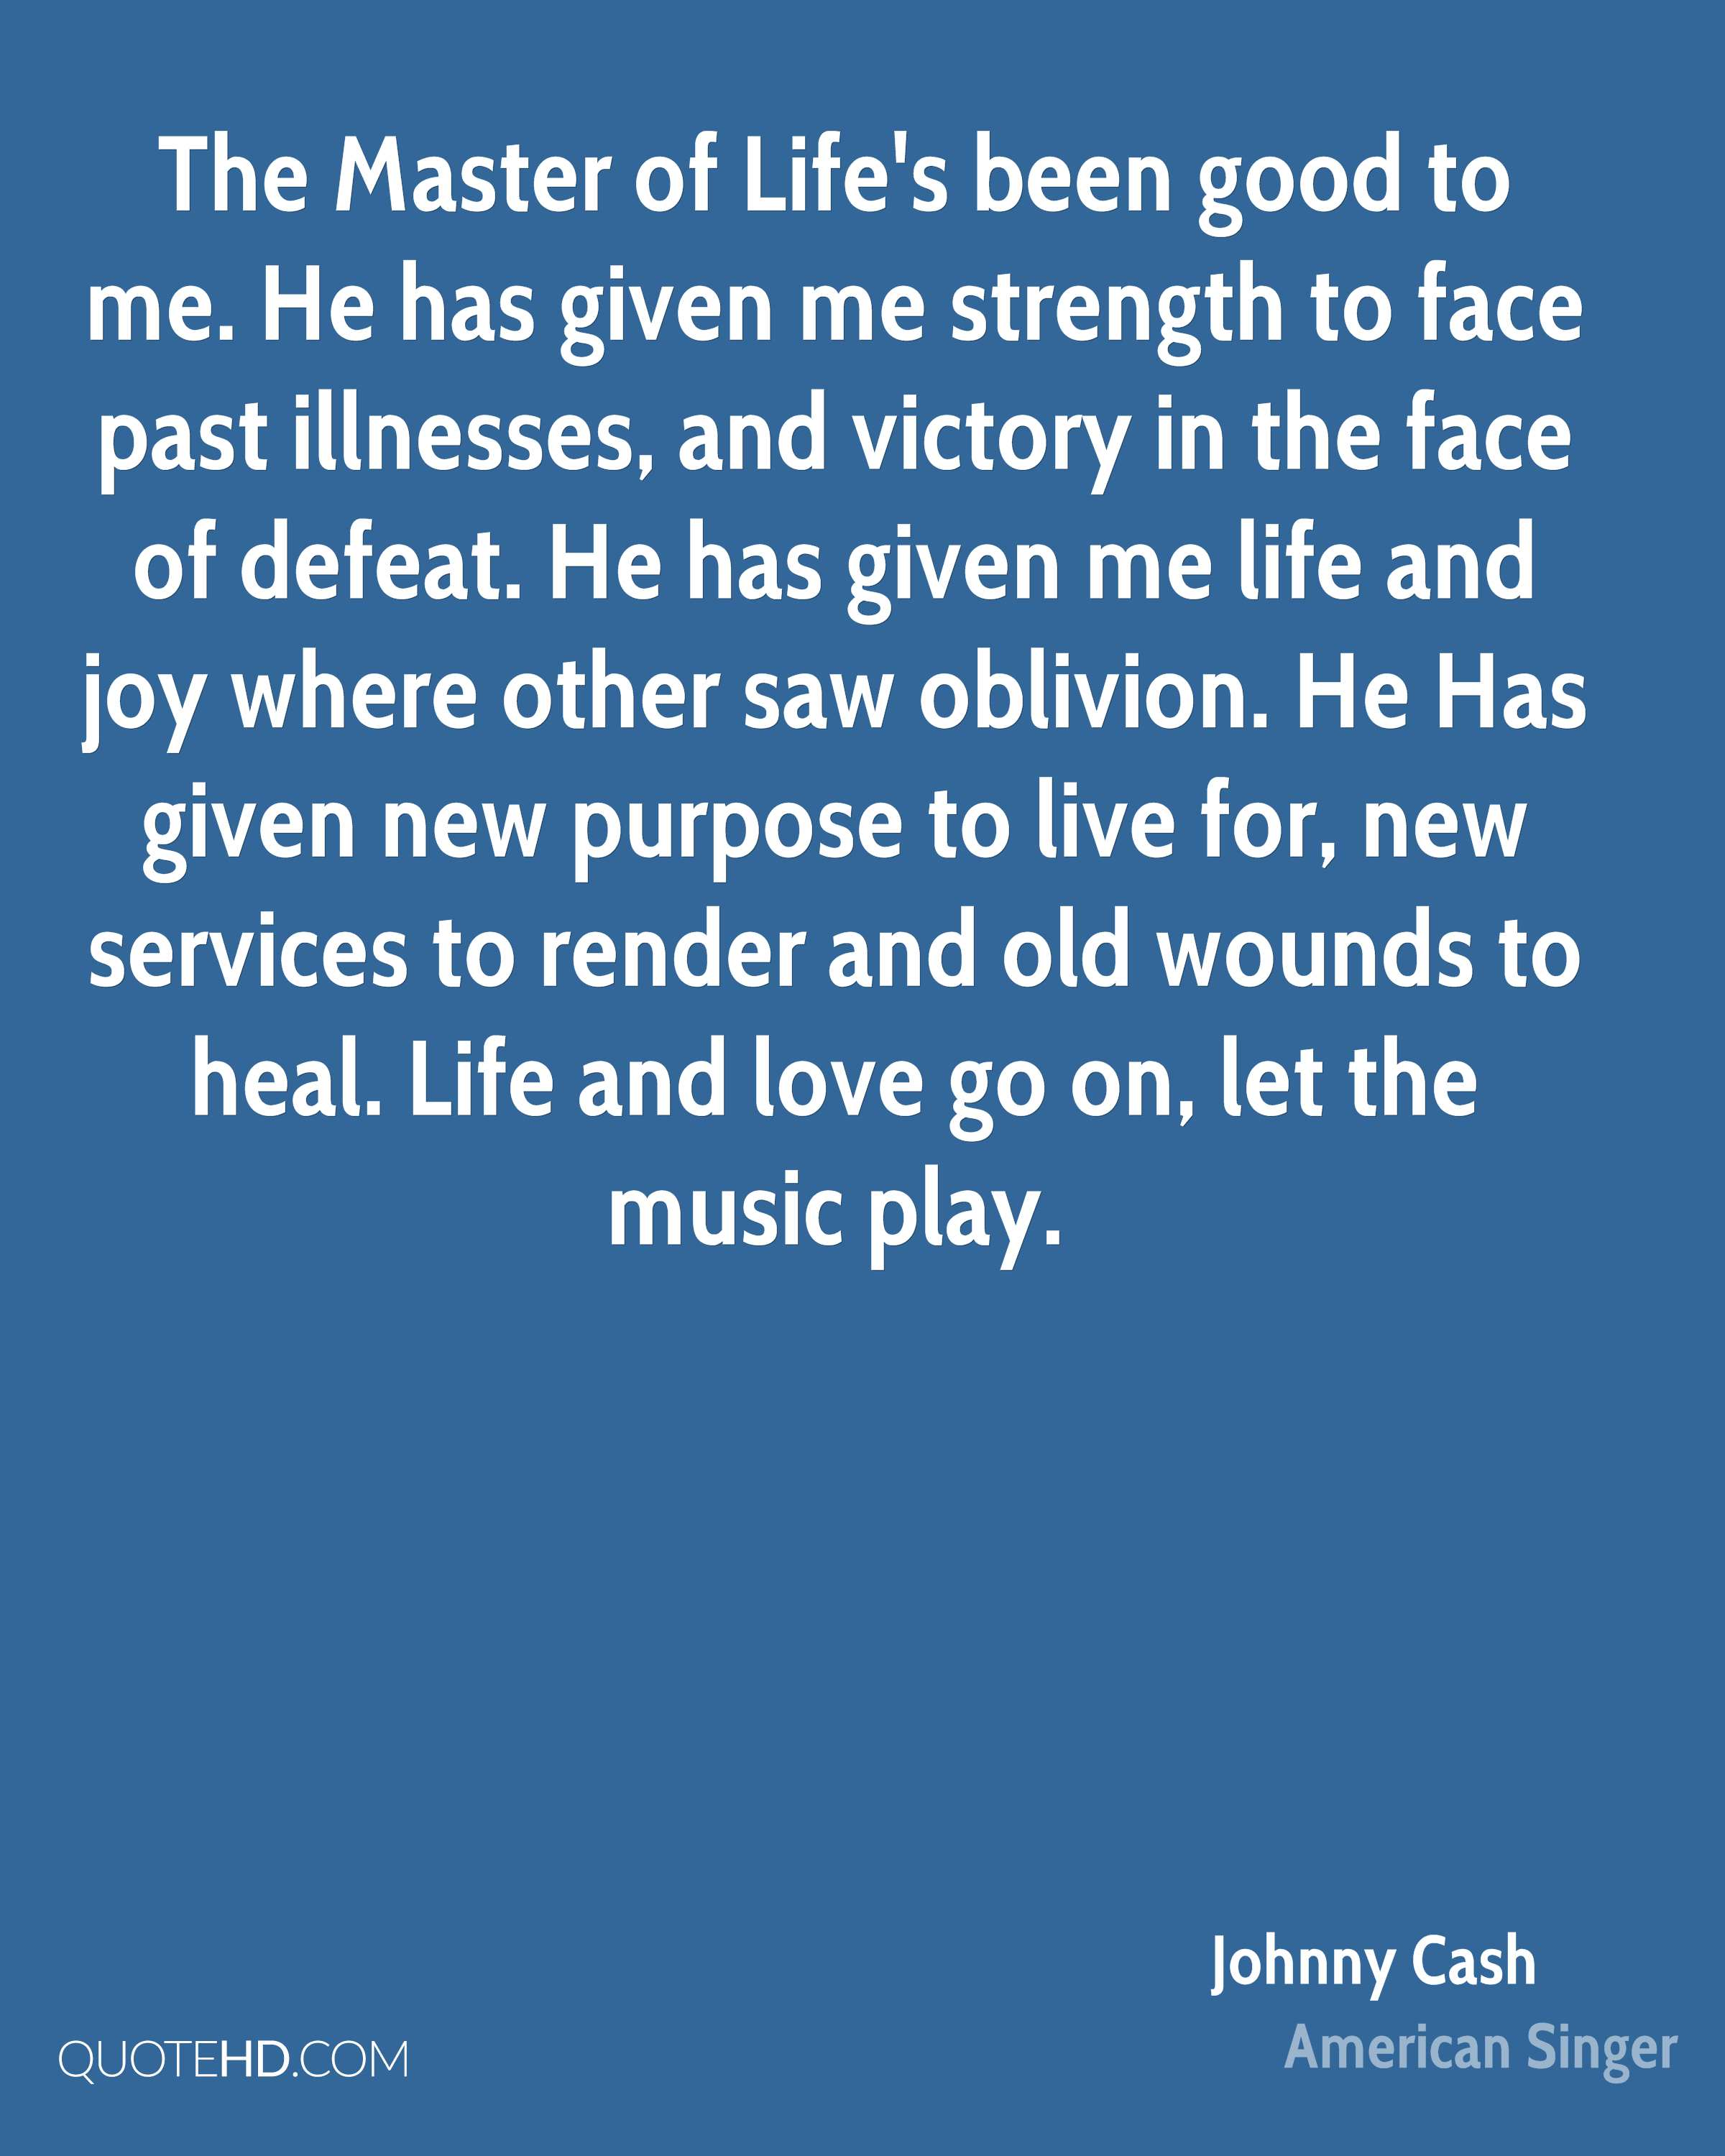 Lifes Good Quotes Johnny Cash Life Quotes  Quotehd